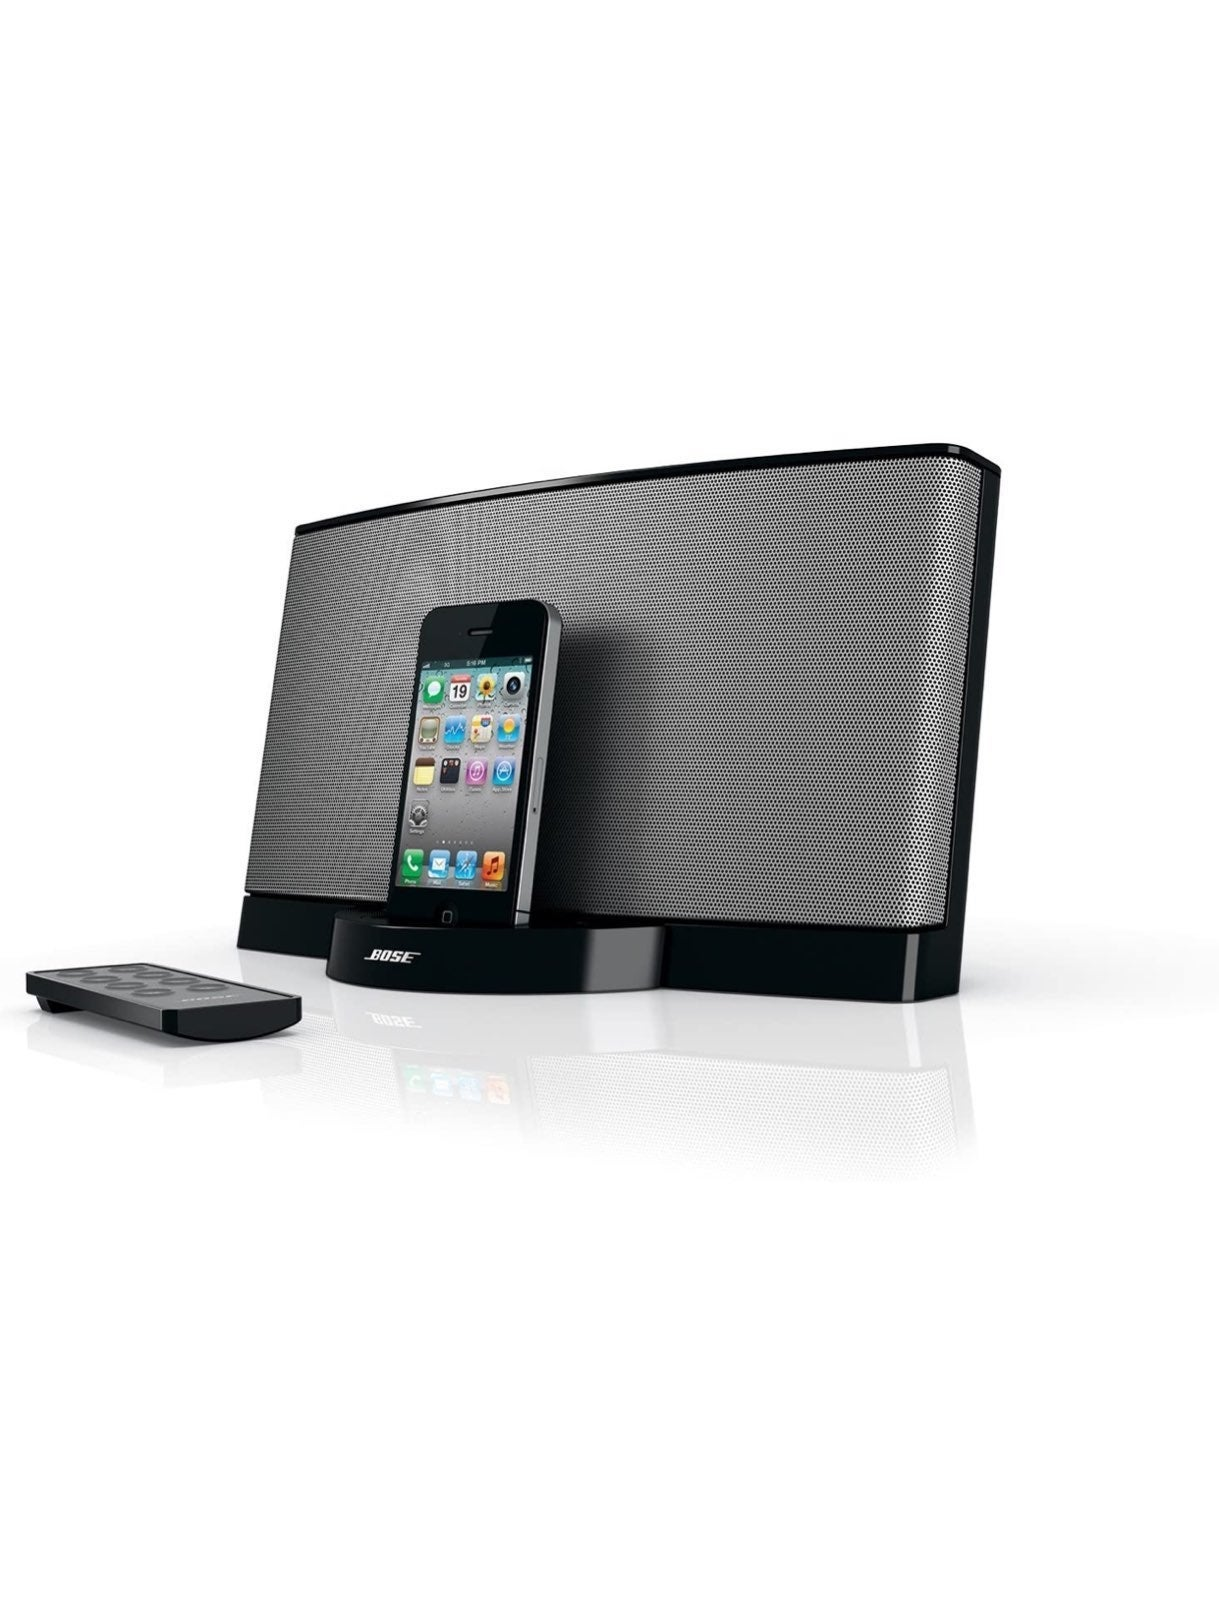 Bose SoundDock® Series lII digital music